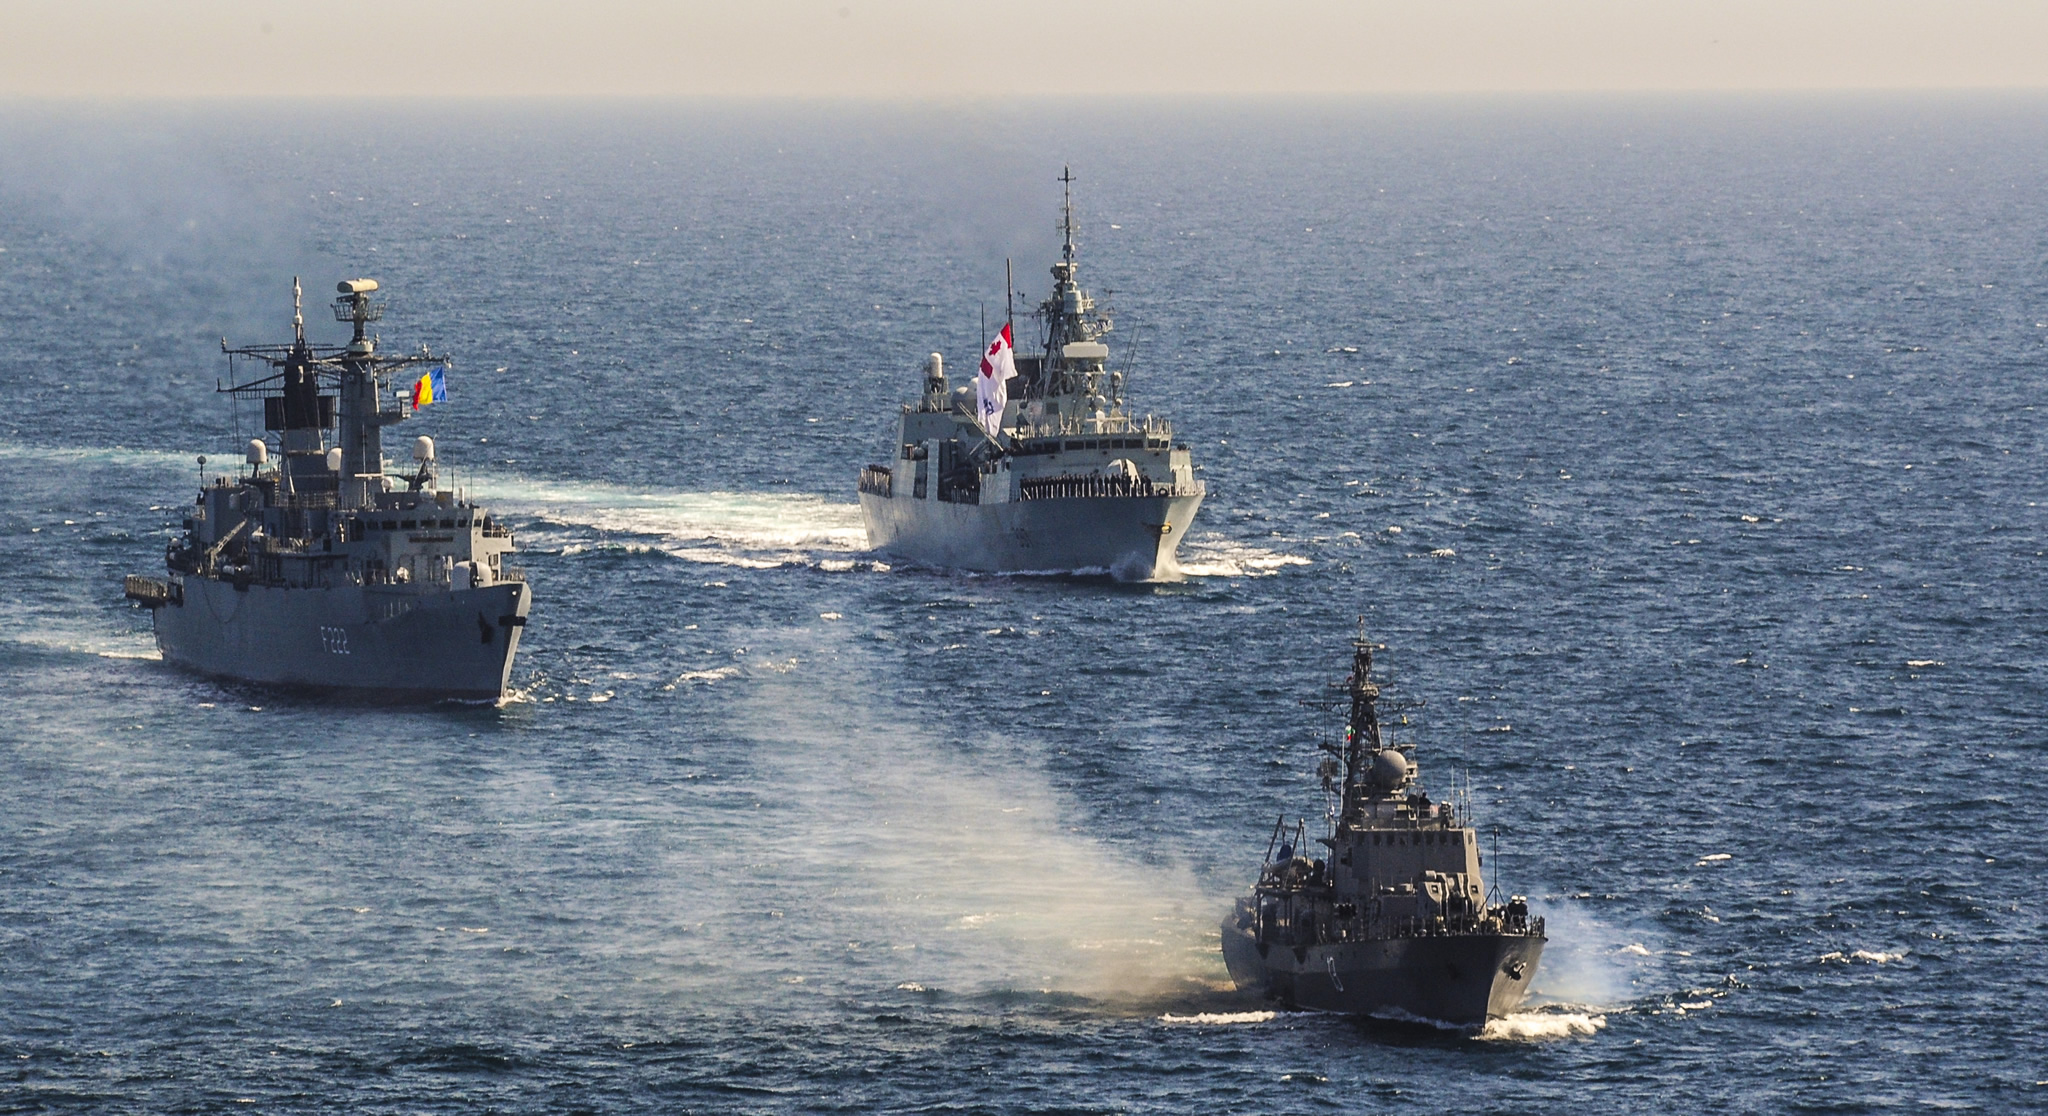 Black Sea. 5 April 2016 – Her Majesty's Canadian Ship (HMCS) FREDERICTON performs a PASEX with the Bulgarian Frigate, BGS RESHITELNI (F13) and the Romanian Frigate, ROS REGINA MARIA, during a patrol in the Black Sea during Operation Reassurance. (Photo: Master Corporal Sebastian Allain, HMCS FREDERICTON Air Detachment)